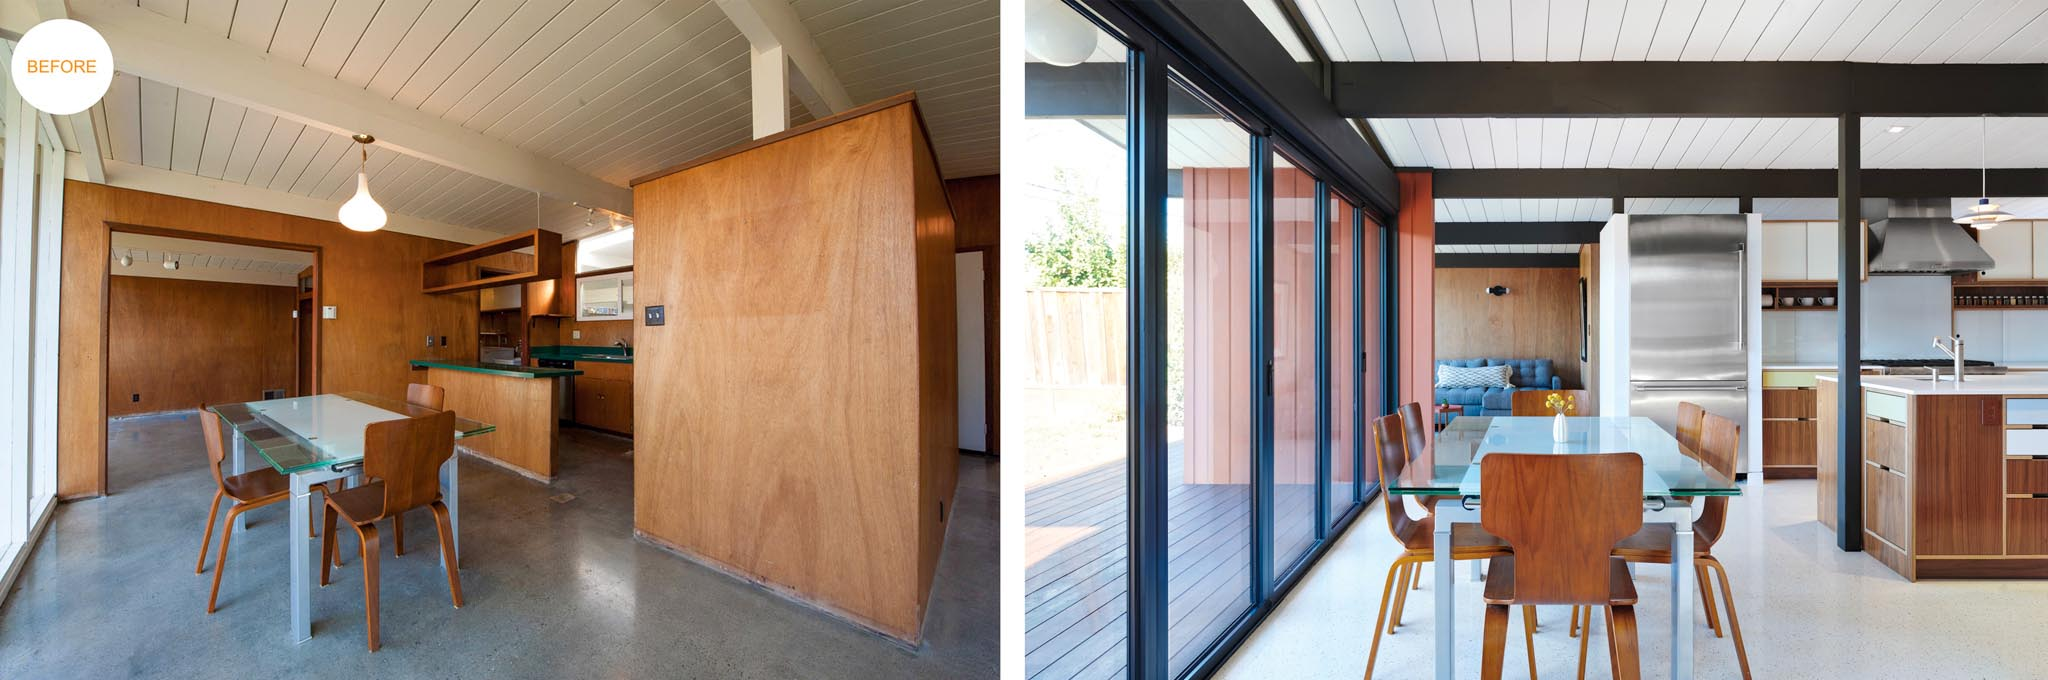 opening the dining room of eichler home to the backyard with NanaWall folding door